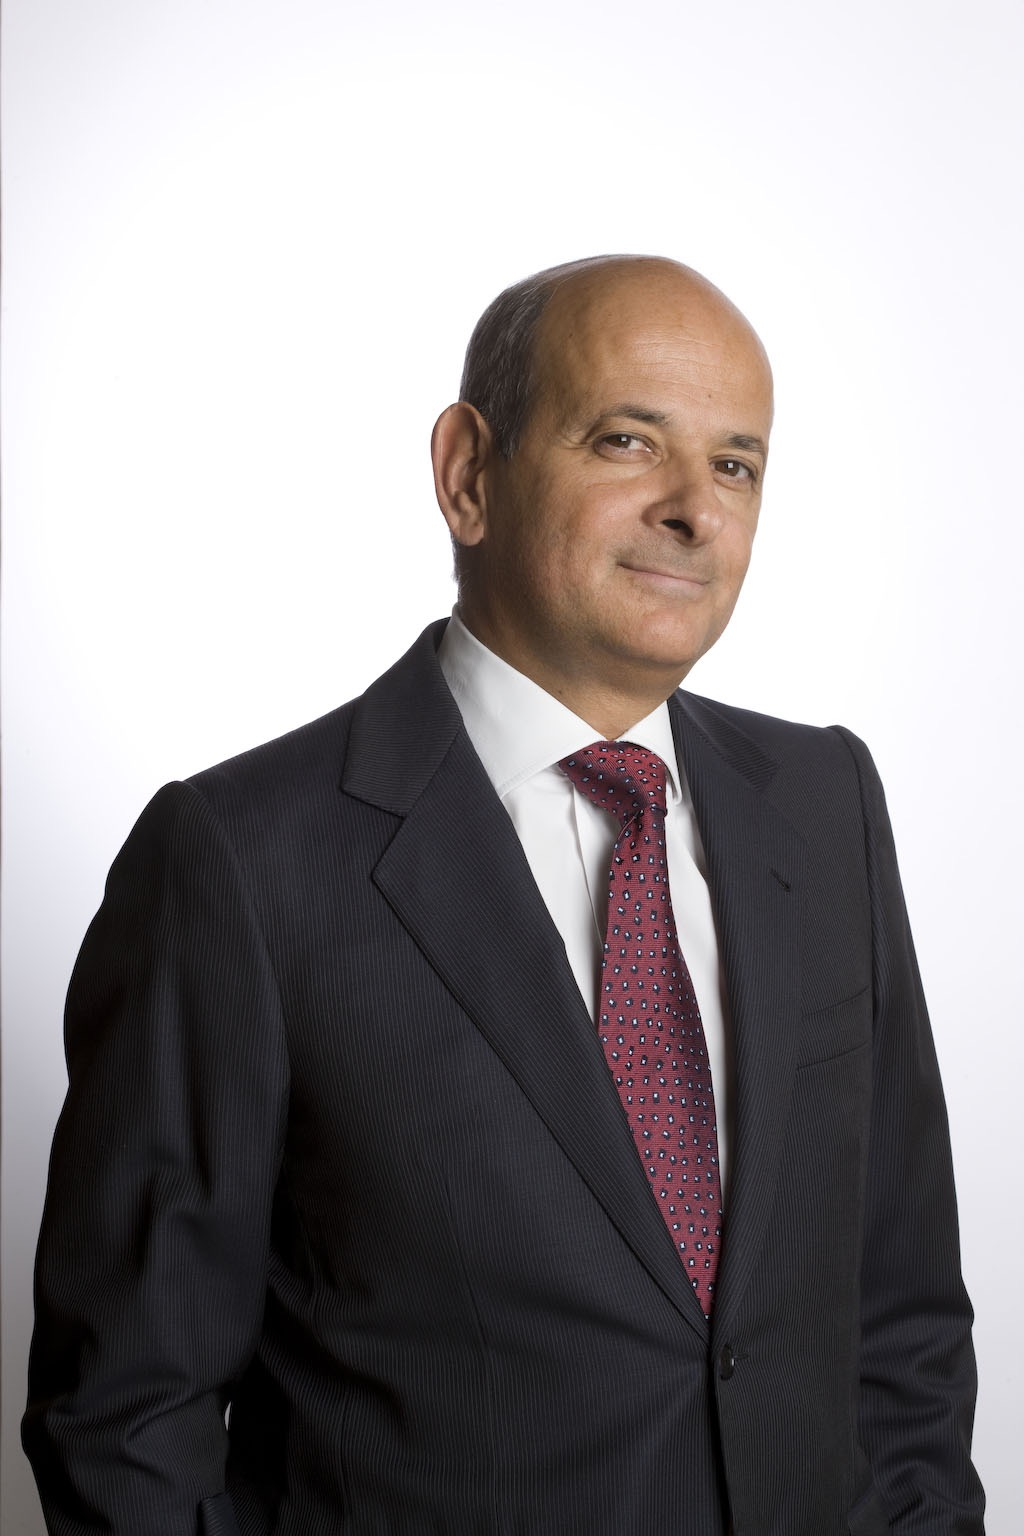 Gérard Cohen, private banker and patron of the arts